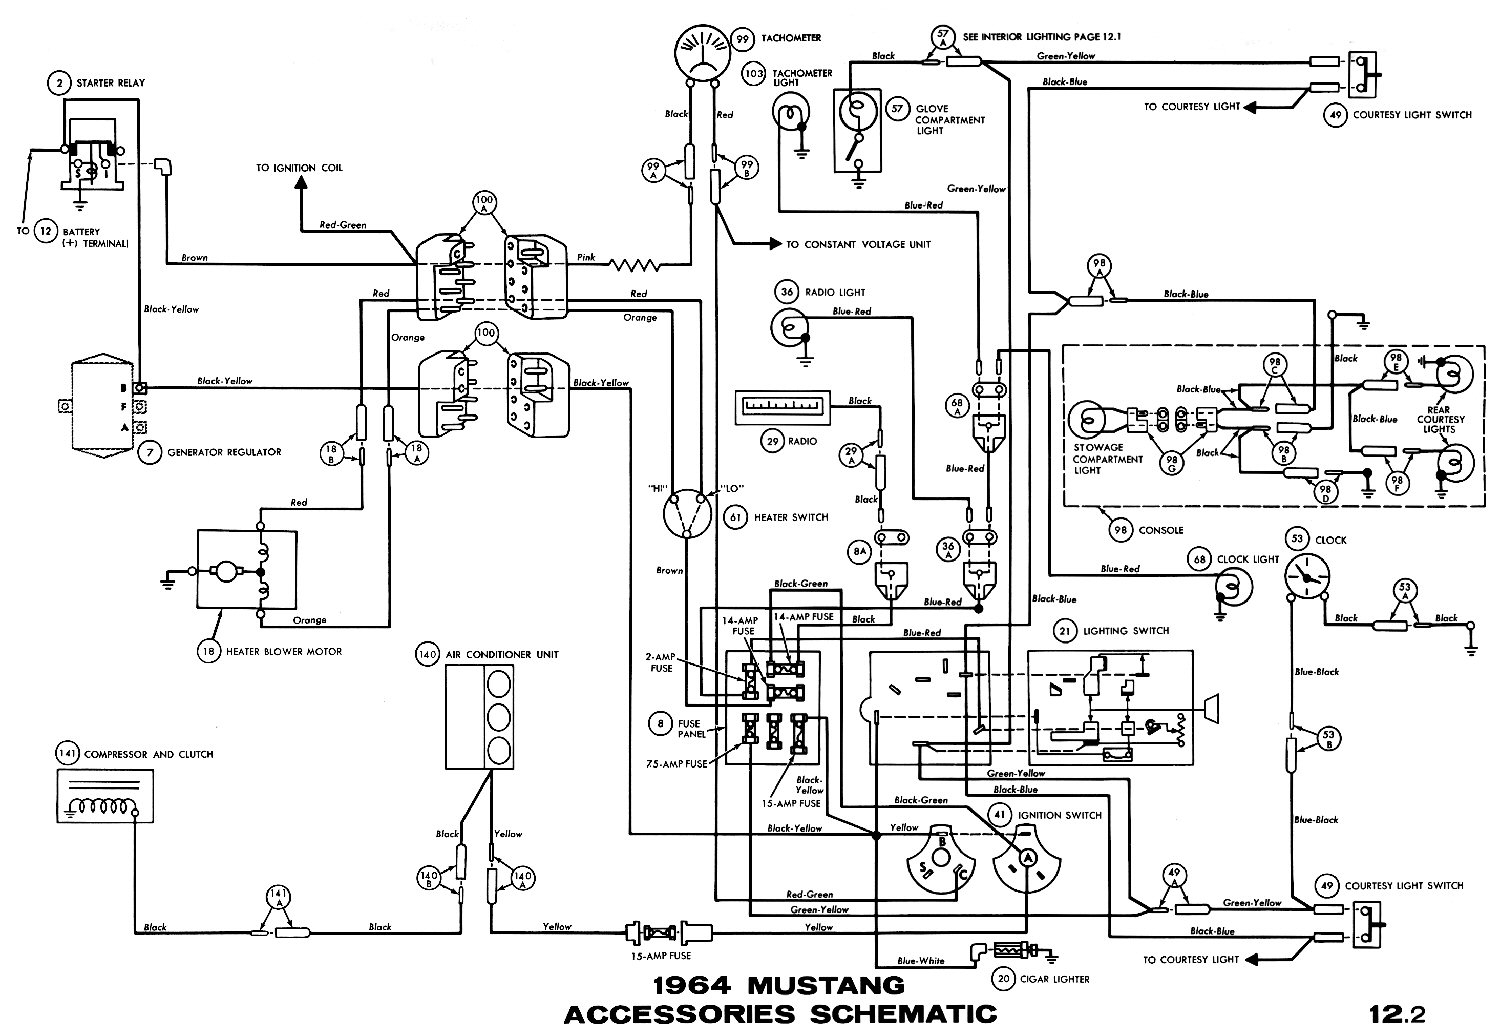 hight resolution of 1965 ford mustang wiring harness on popscreen wiring diagram 1965 ford mustang wiring harness